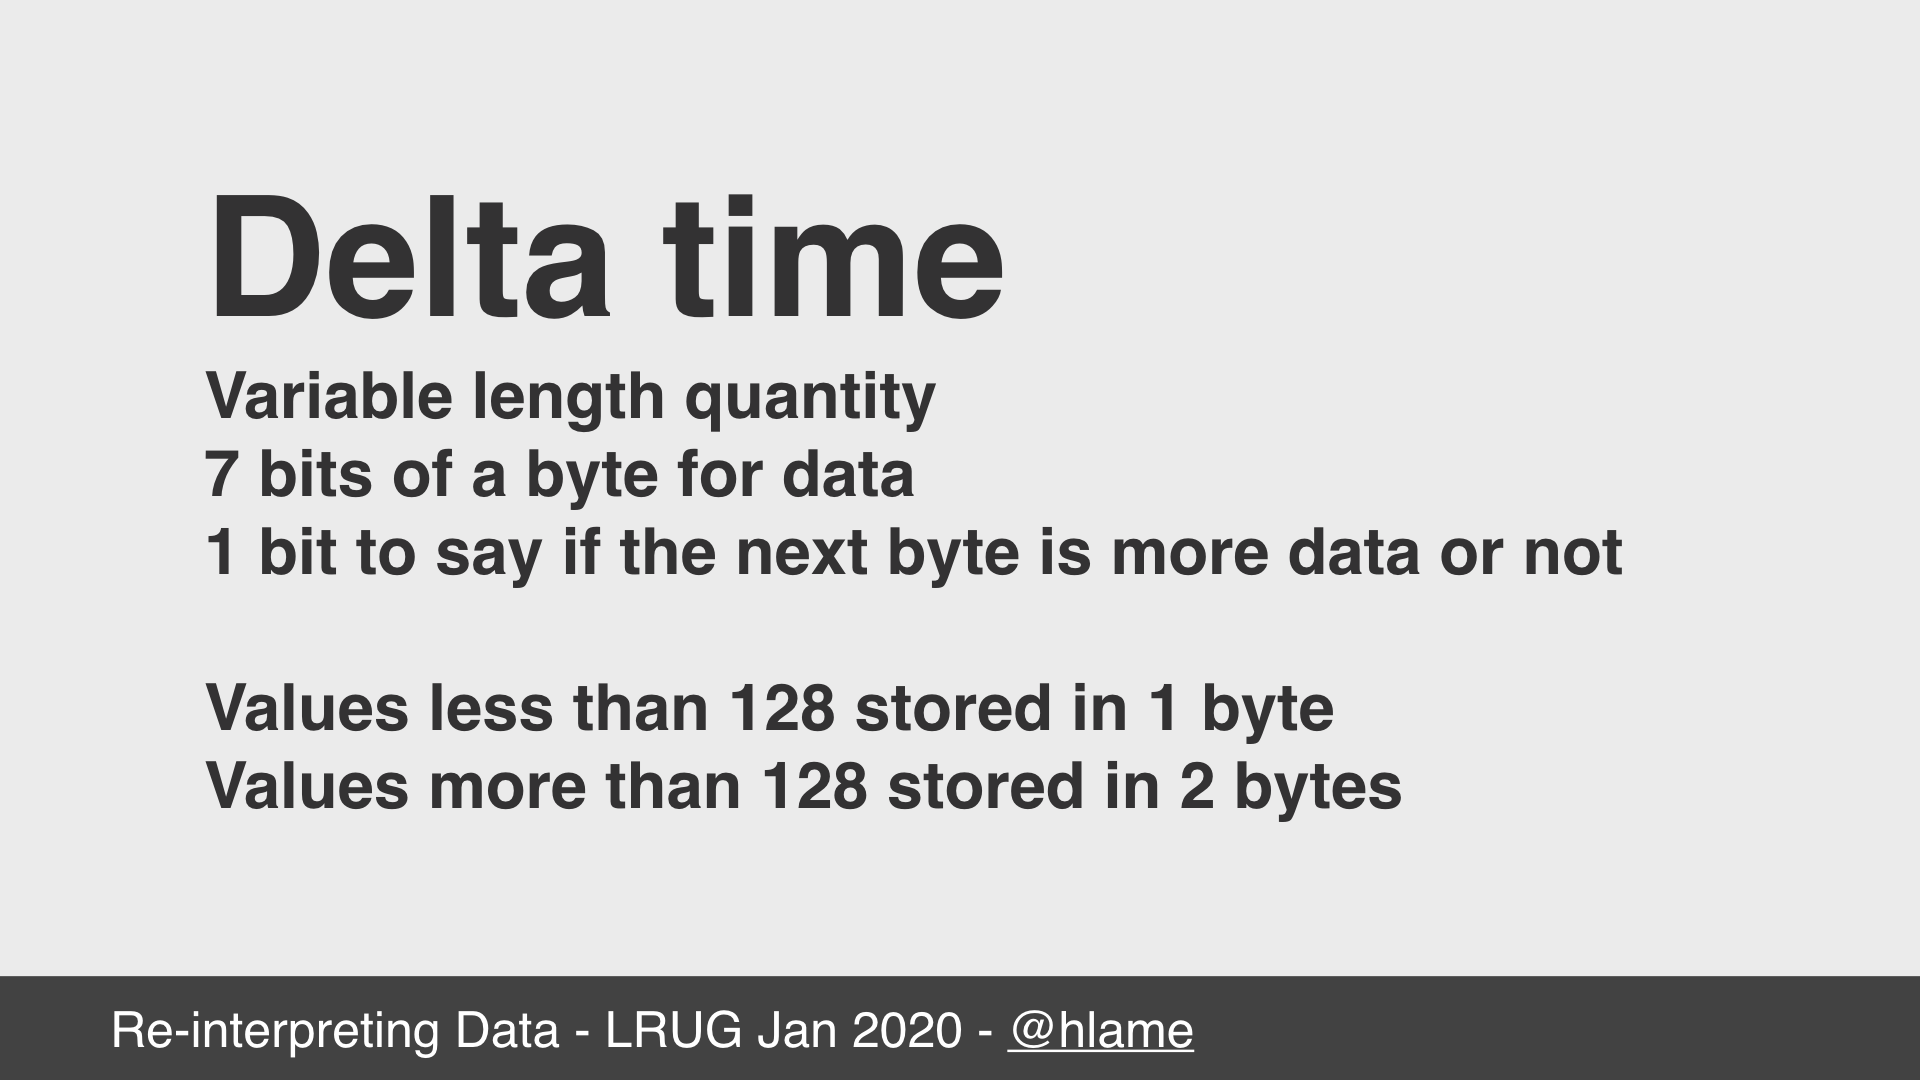 text: Delta time; Variable length quantity; 7 bits of a byte for data; 1 bit to say if the next byte is more data or not; Values less than 128 stored in 1 byte; Values more than 128 stored in 2 bytes